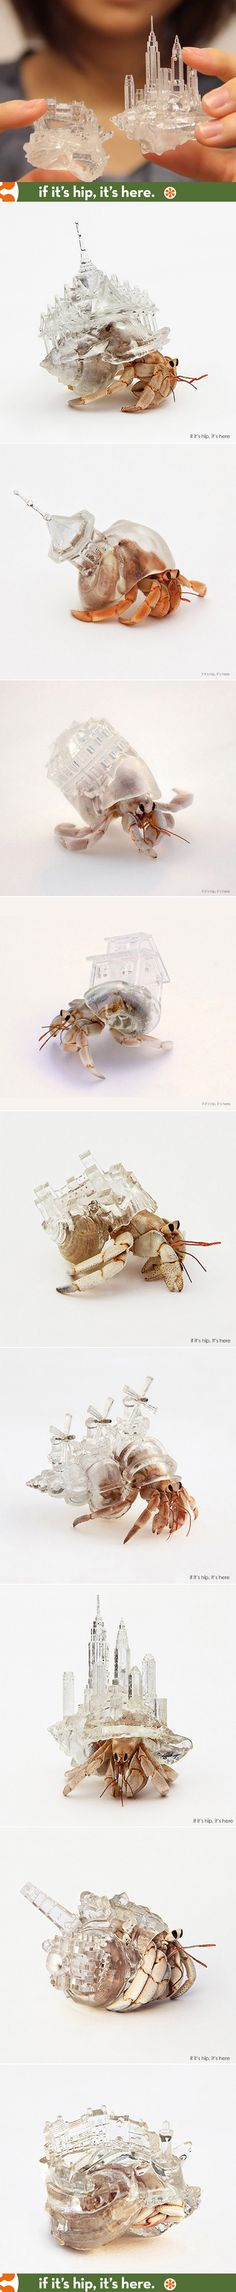 Artist Aki Inomata's 3D-printed acrylic shells for the hermit crab. See the entire project at http://www.ifitshipitshere.com/hermit-crabs-don-3d-printed-cityscapes-shells-project-migration/ <<< omg tell me you're just joking.... Holy [not so holy word]